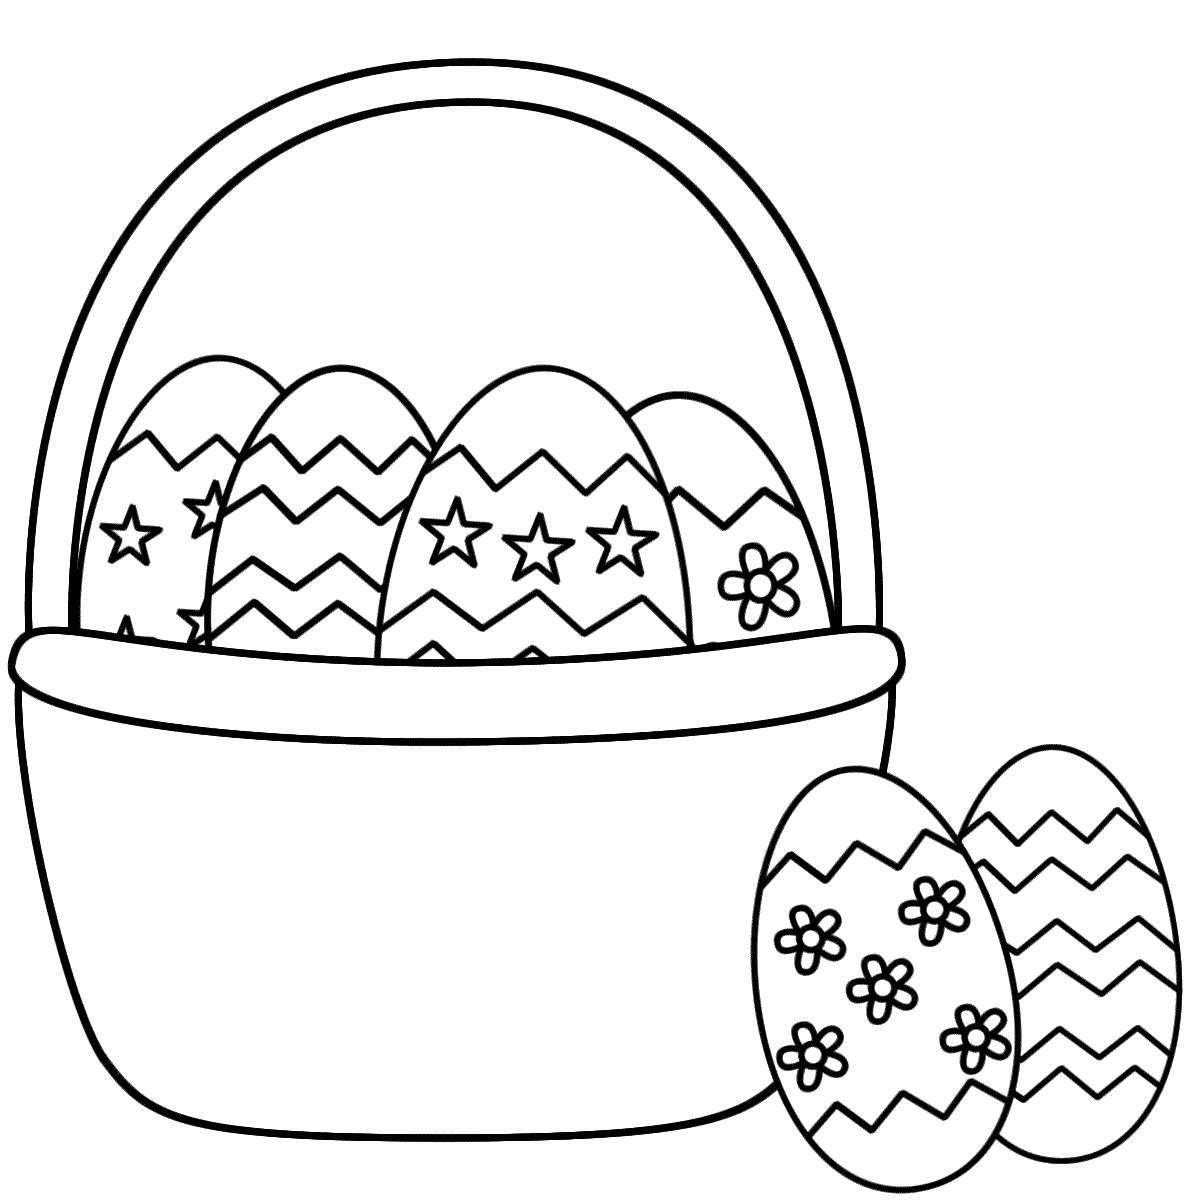 Page For Kids Coloring Pages 1200x1200 Drawn Basket Easter Egg